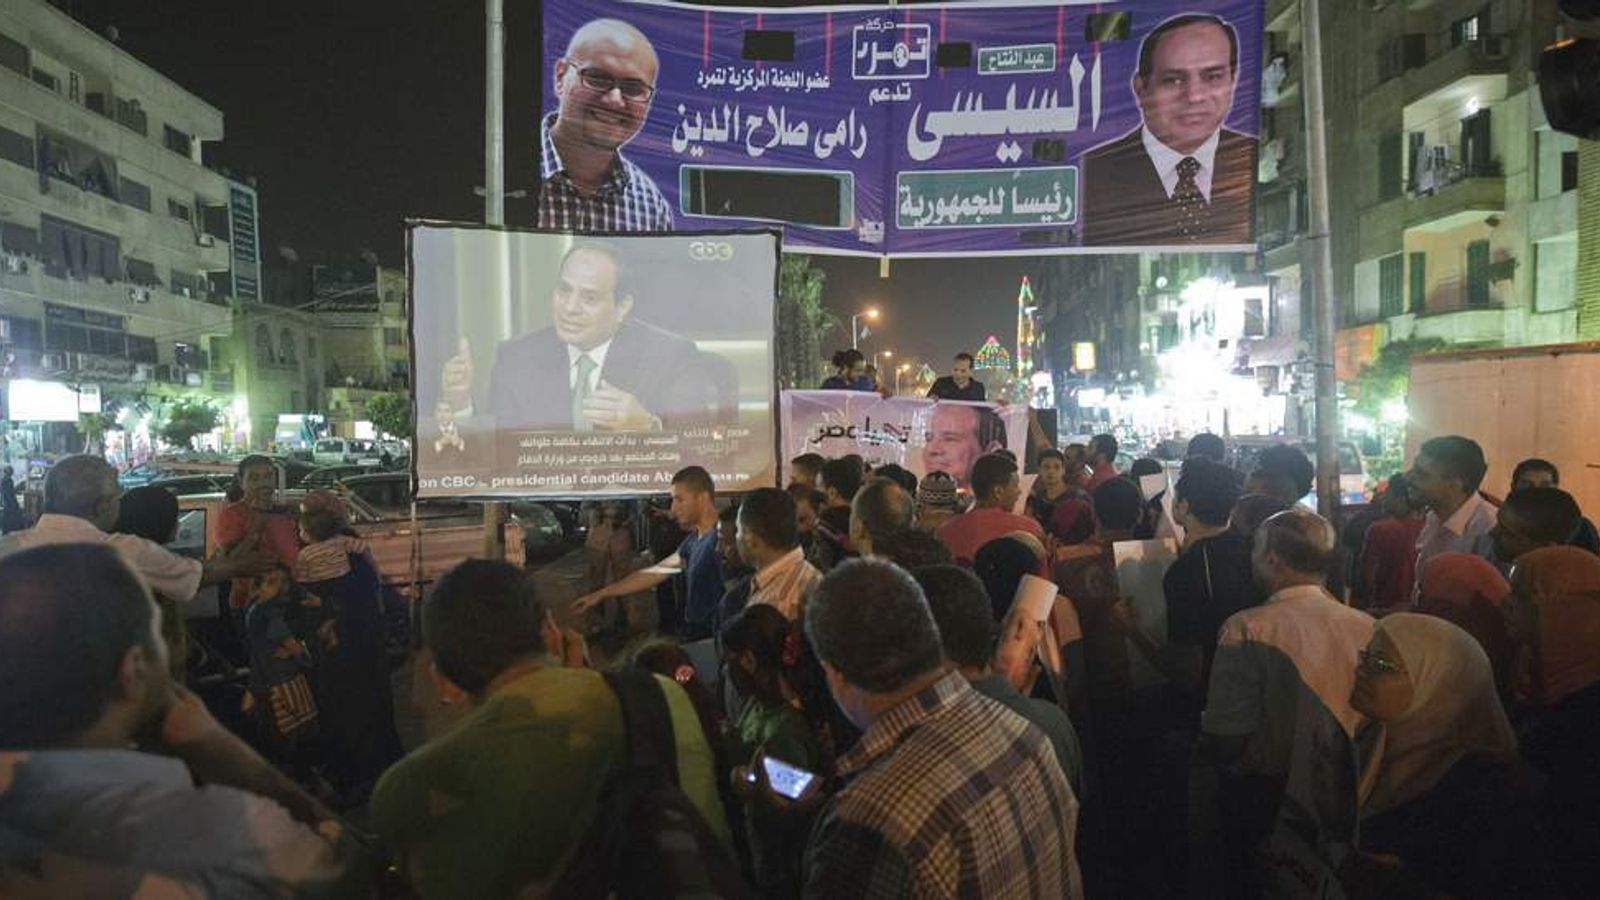 EGYPT-POLITICS-VOTE-SISI